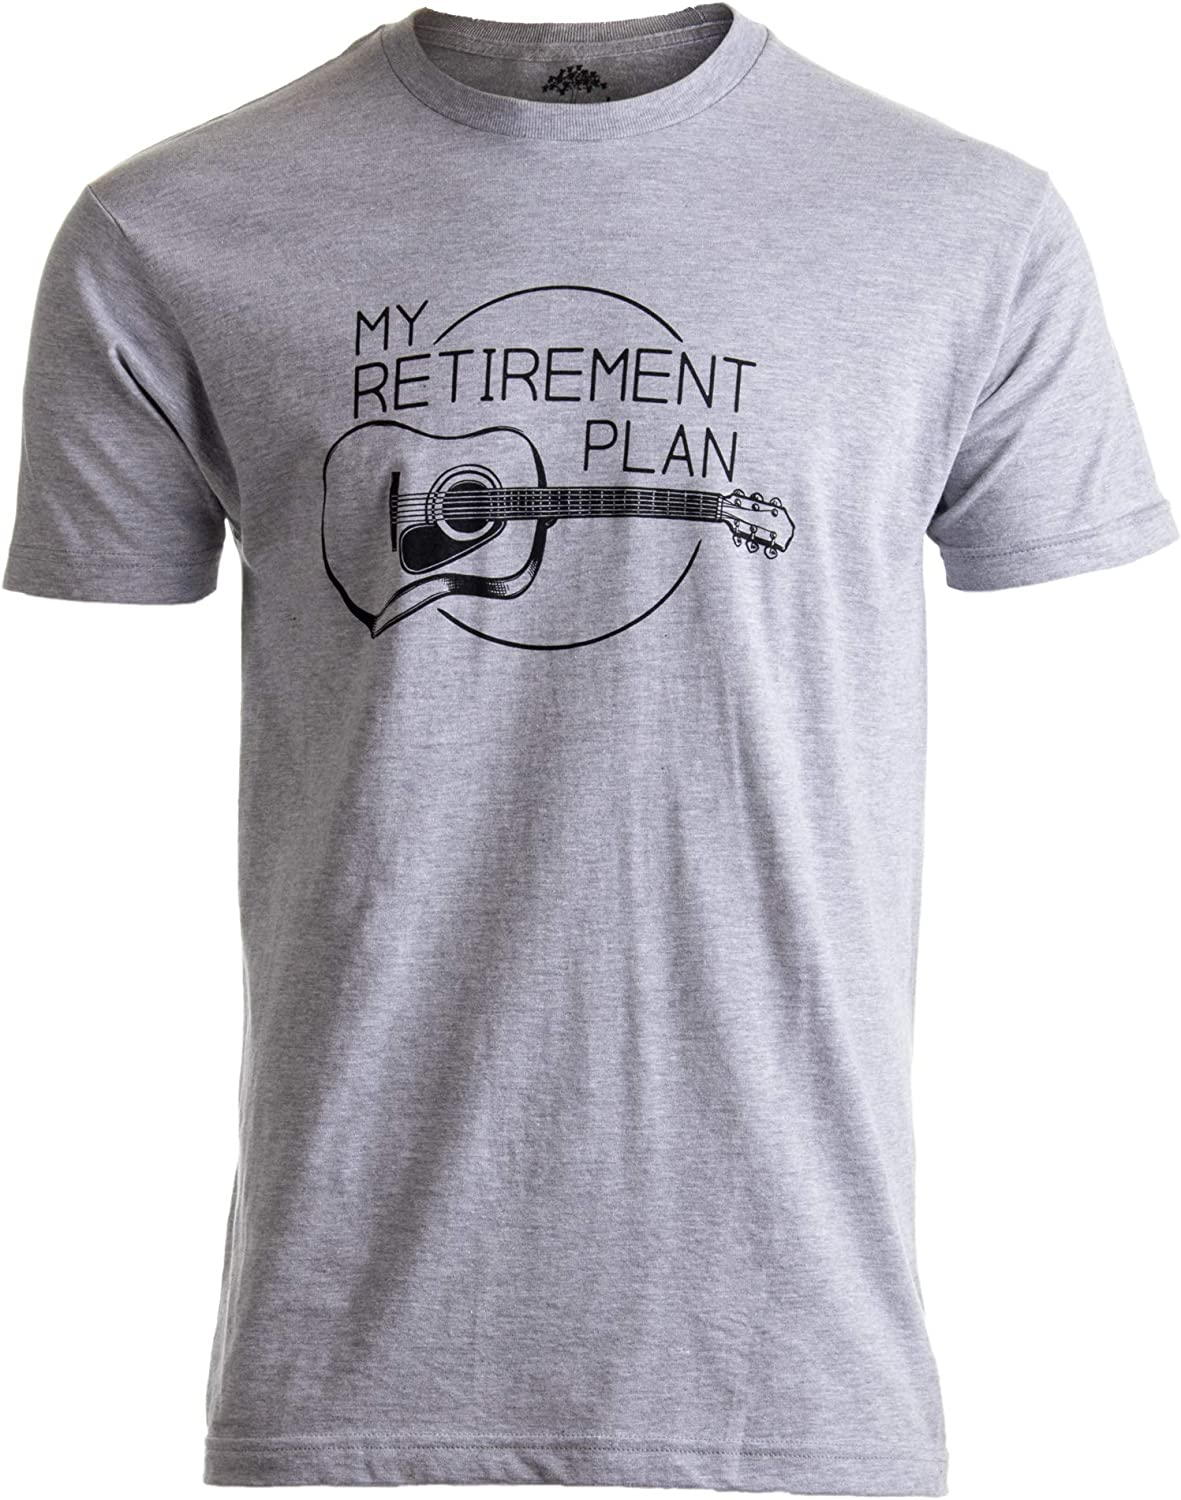 My Retirement Plan (Guitar) | Funny Music Musician Humor Men Women Joke T-Shirt